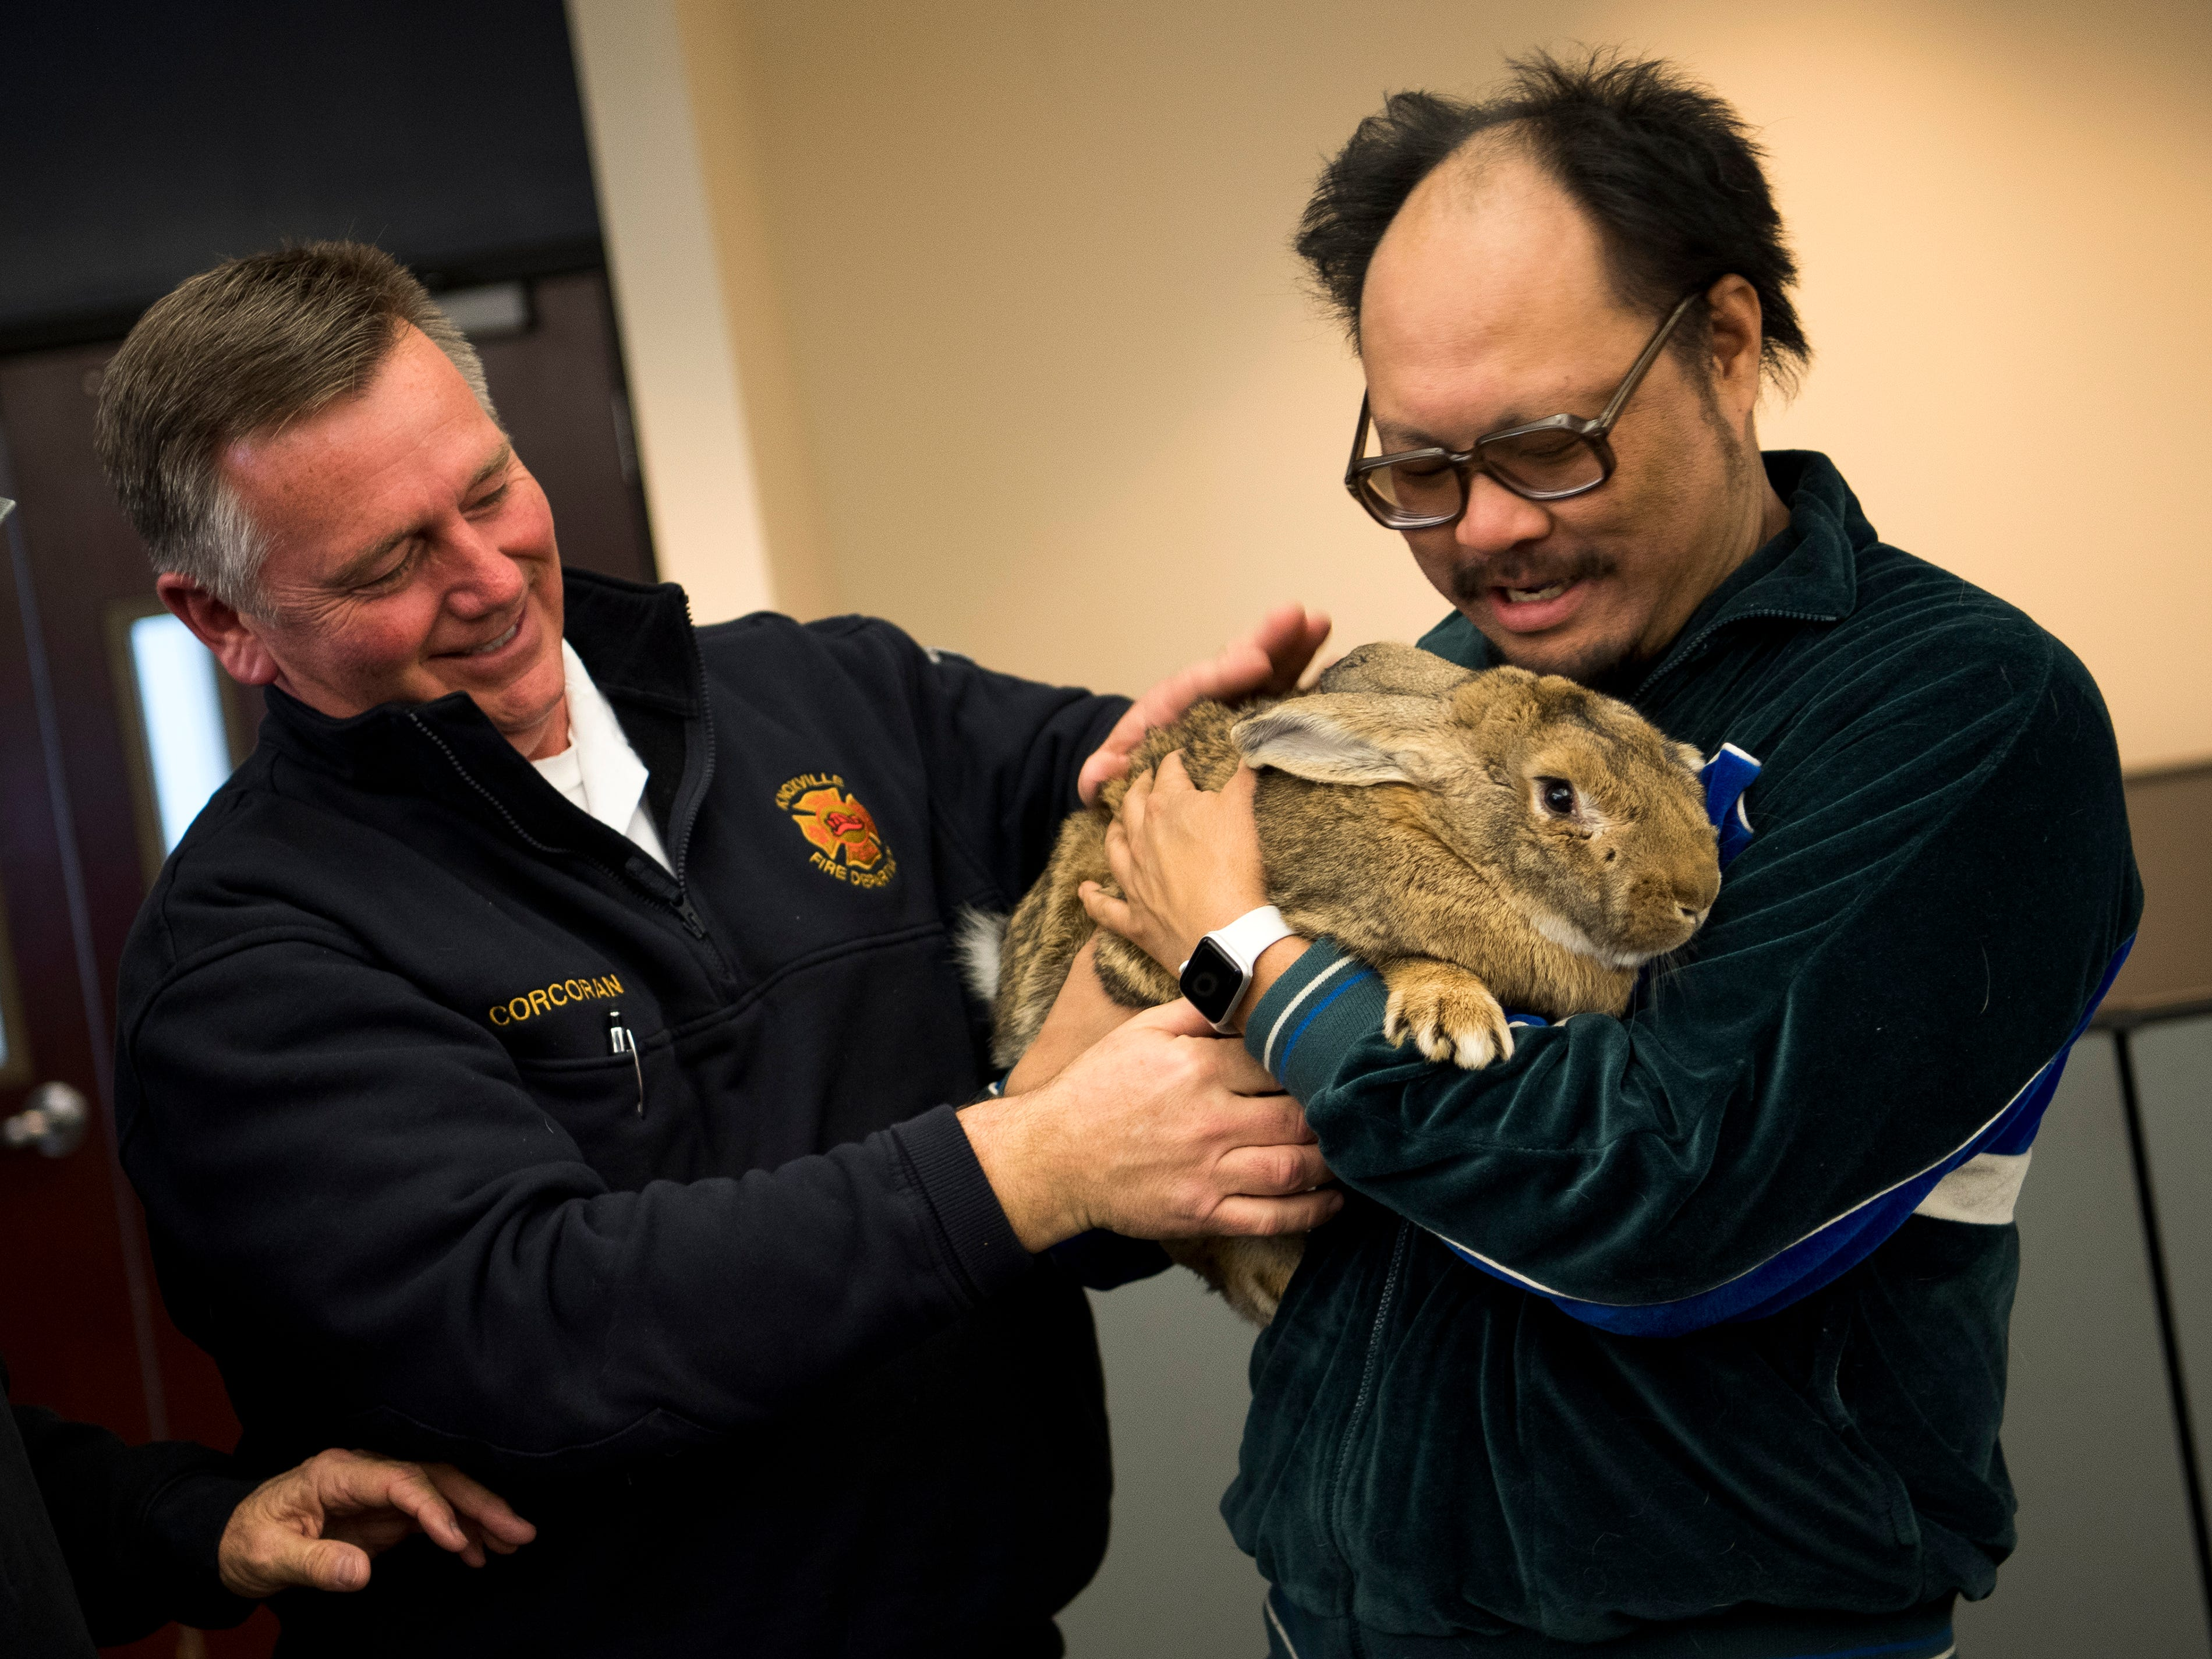 Knoxville Fire Department spokesman D.J. Corcoran, left, helps pet rabbit Barley into the arms of News Sentinel photographer Saul Young's arms in the News Sentinel's newsroom on Thursday, January 31, 2019.